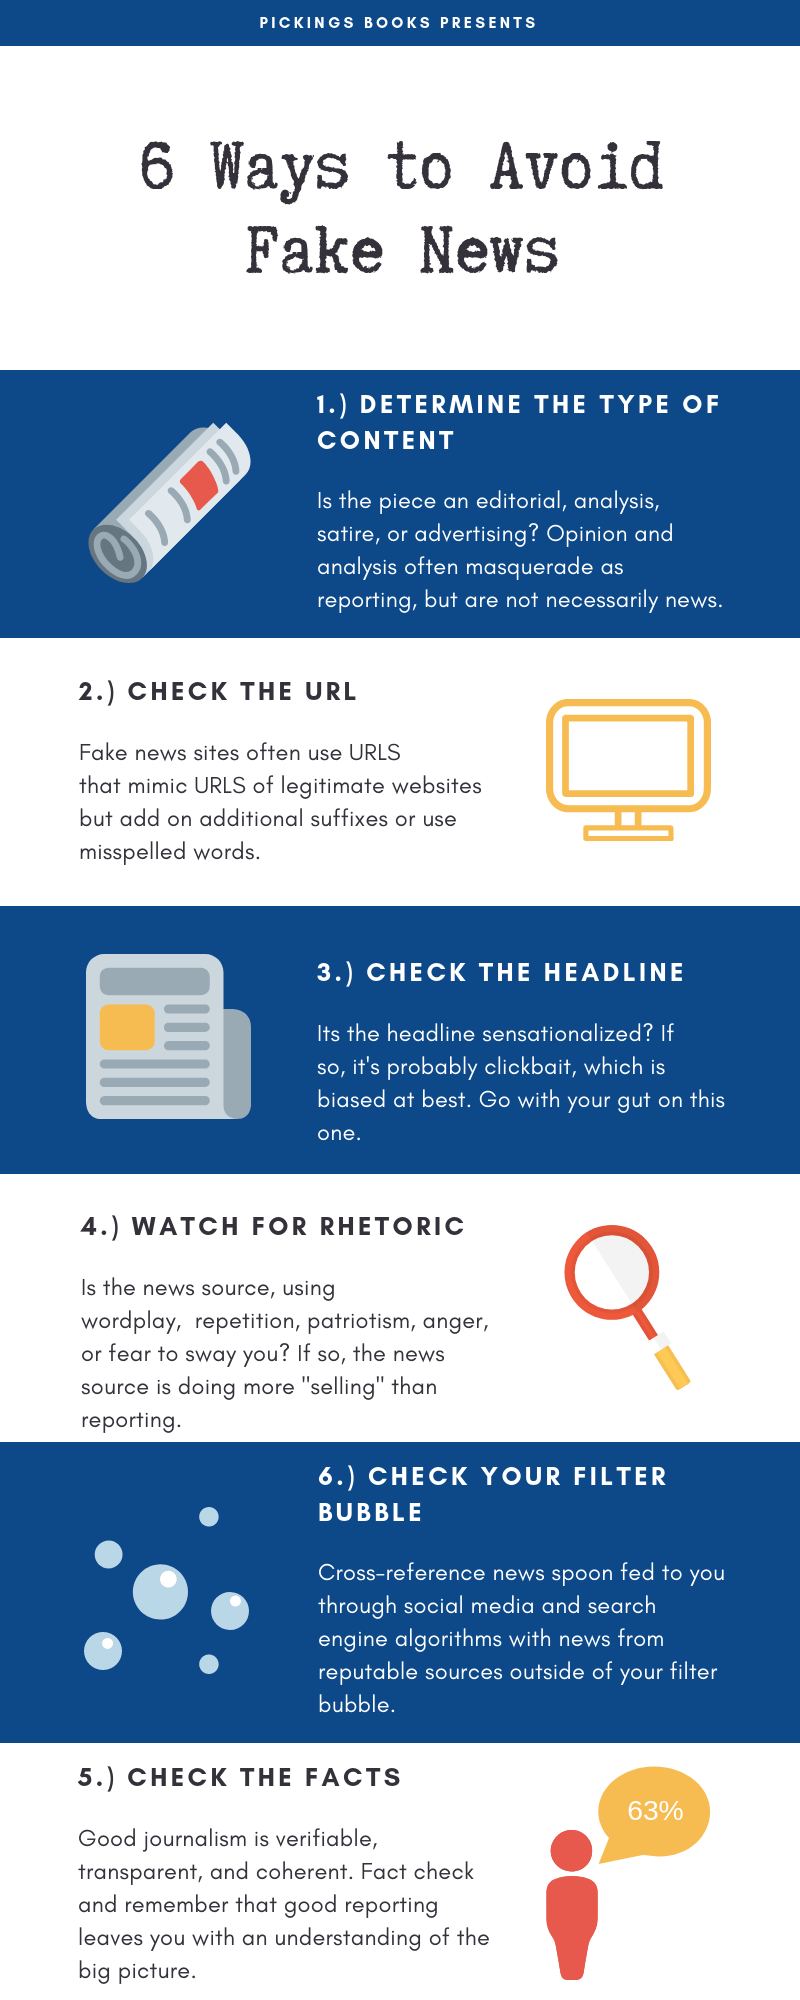 6 Ways to Avoid Fake News